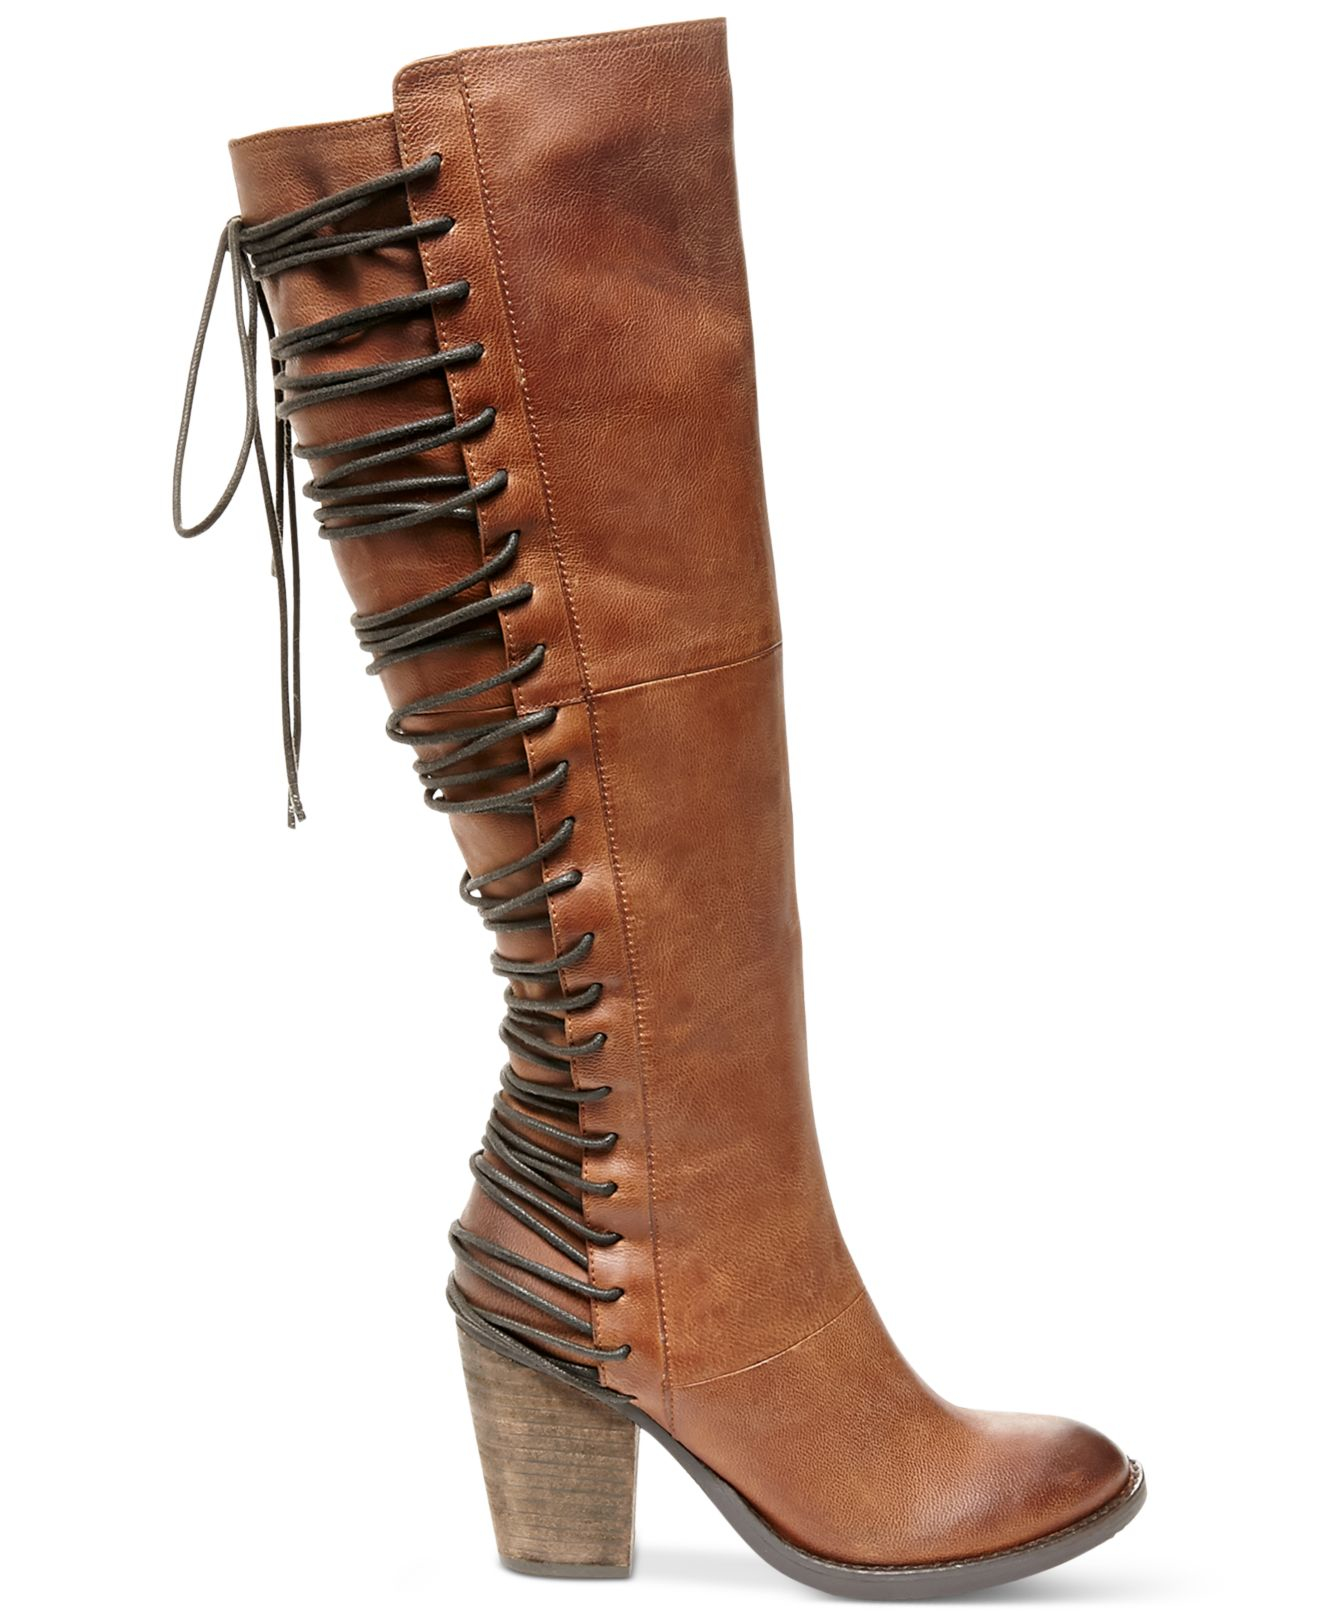 Steve madden Rickter Lace-up Boots in Brown | Lyst